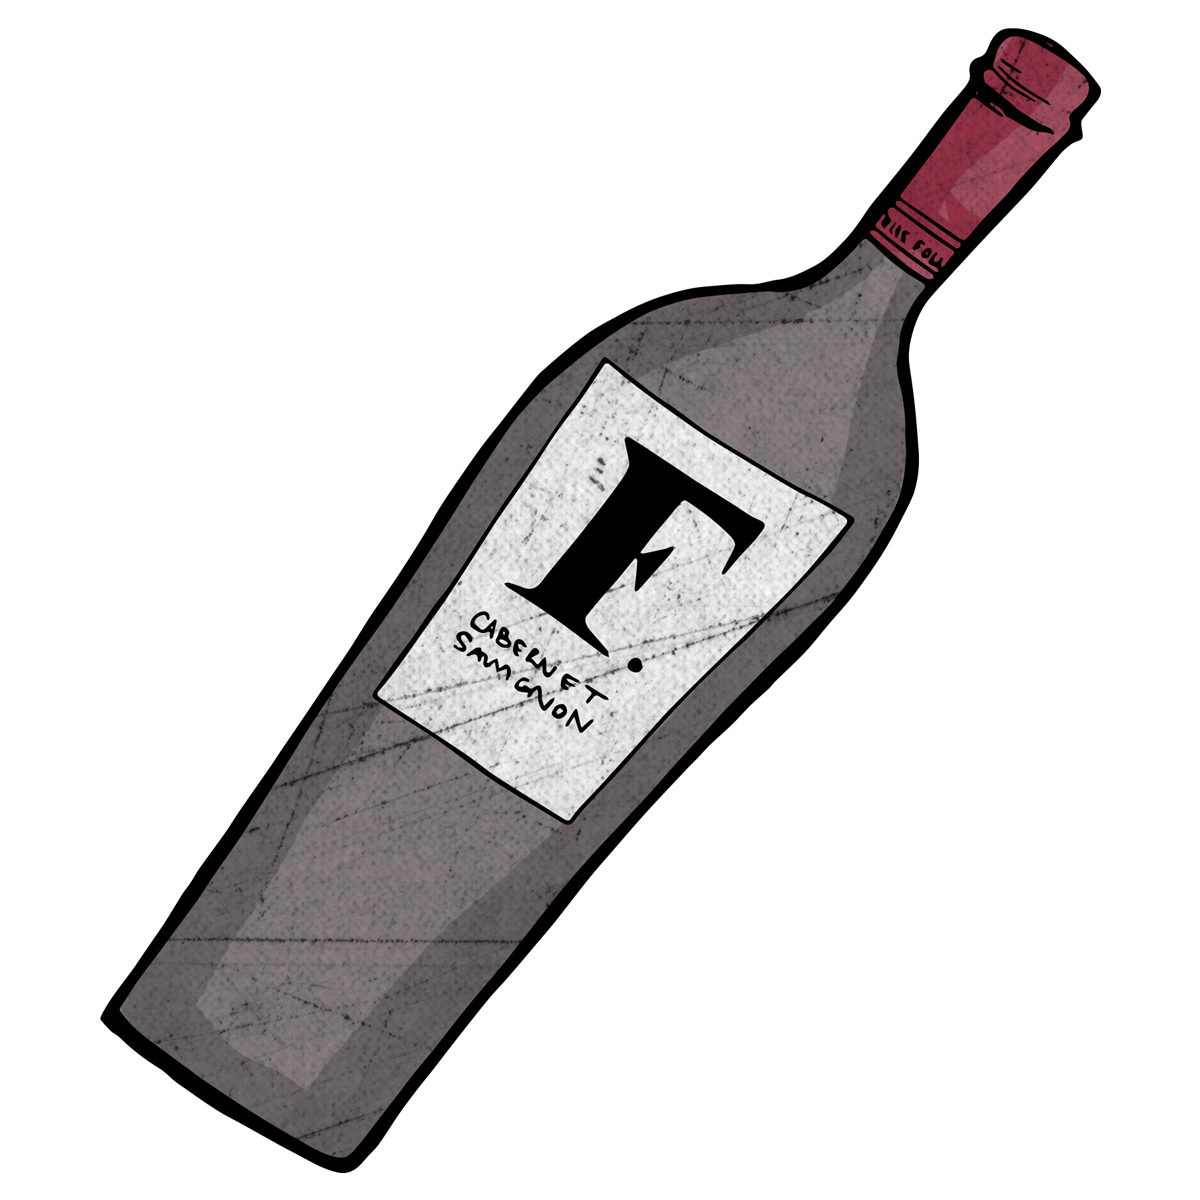 f-cabernet-sauvignon-illustration-winefolly